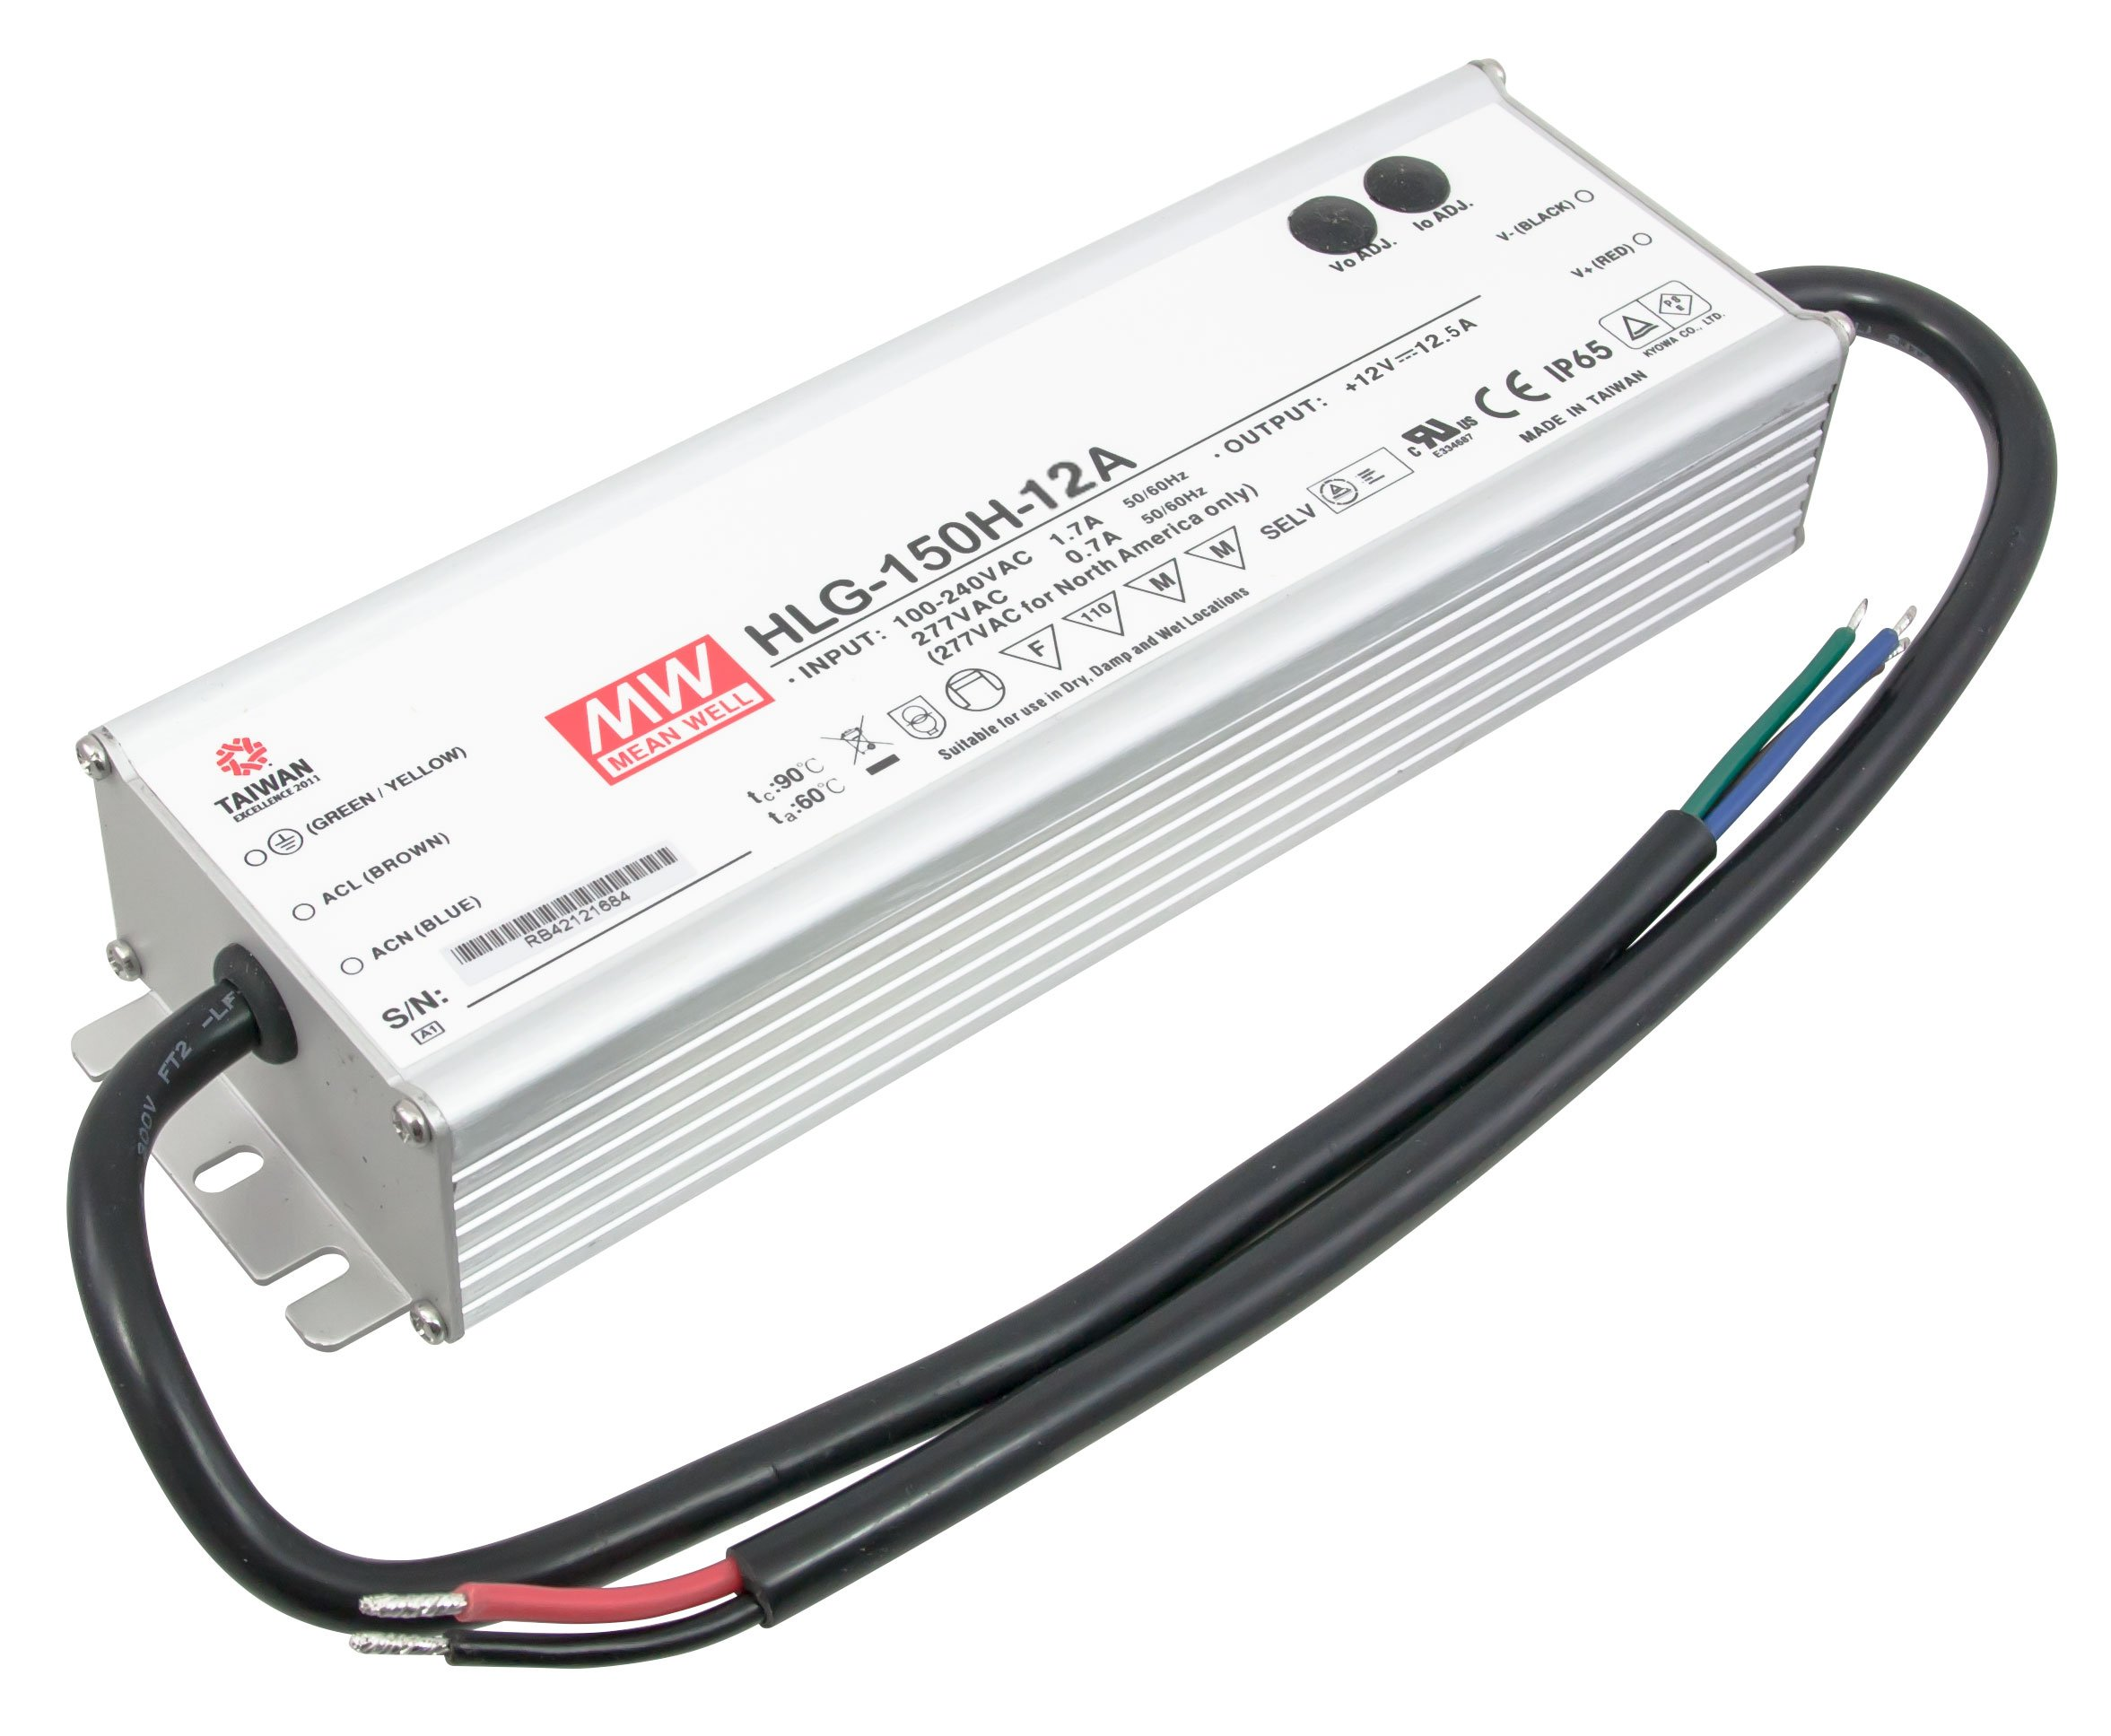 American Lighting 150W 12V DC Constant Voltage LED Hardwire Power Supply Driver, White